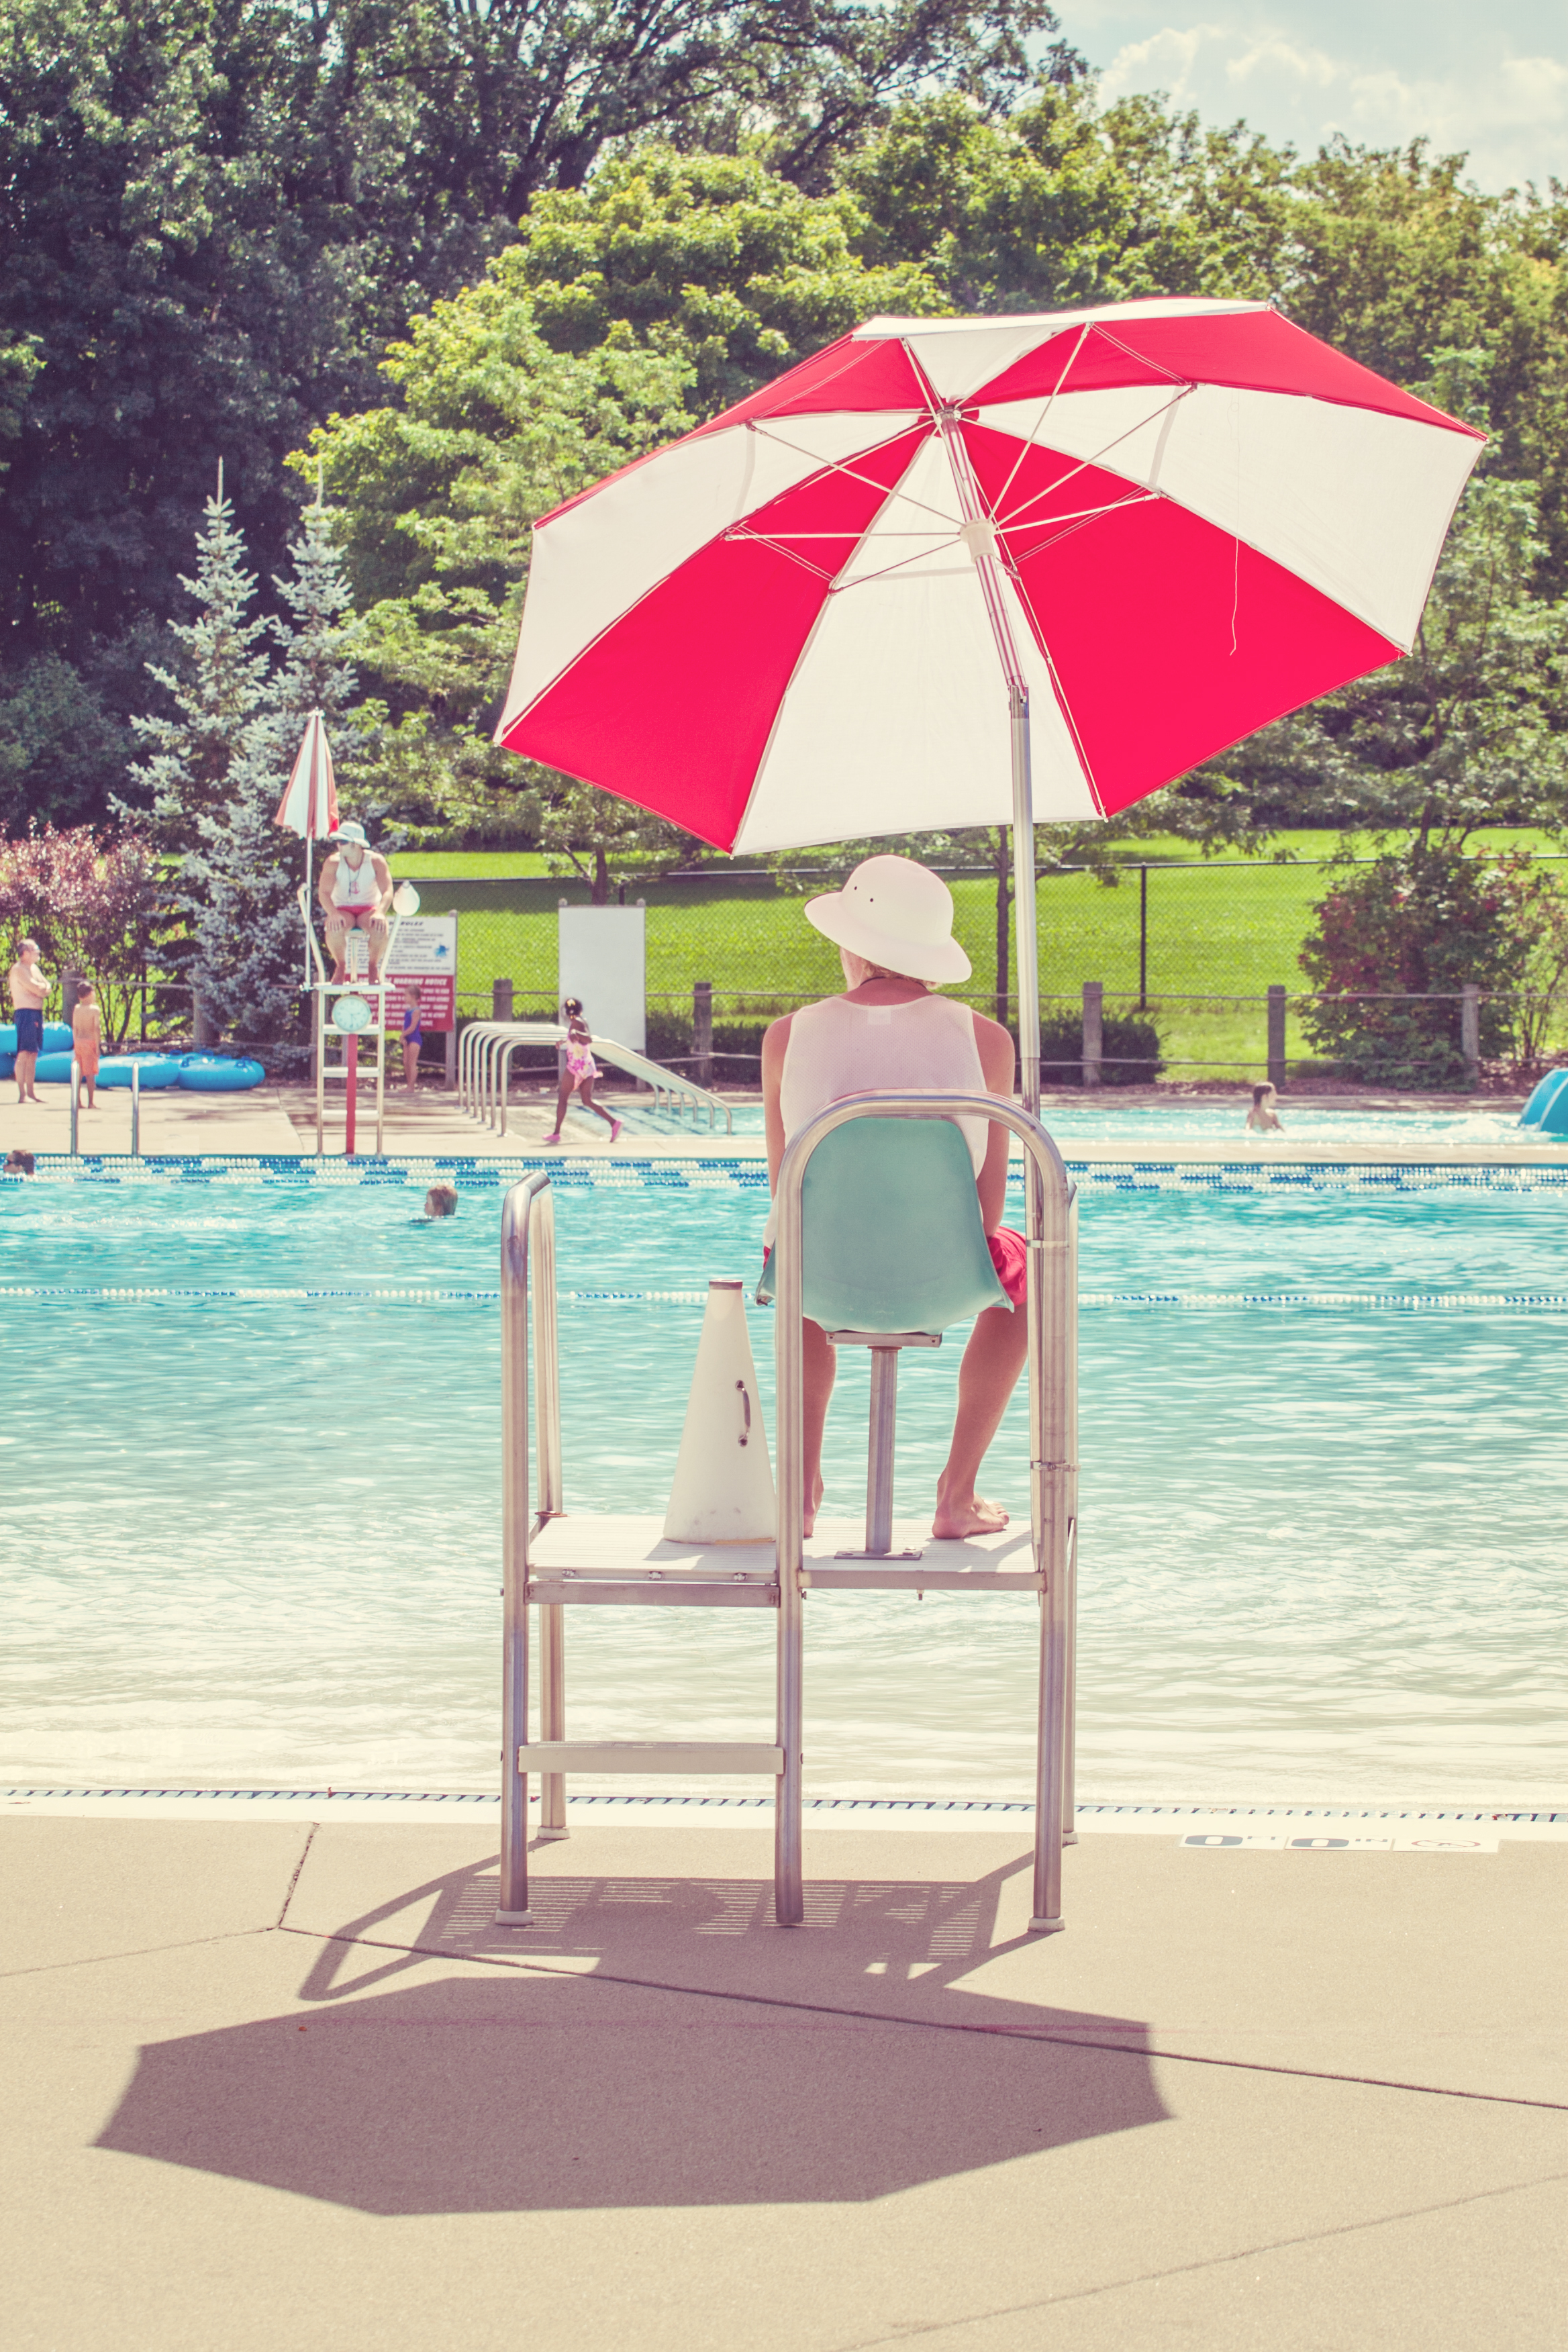 LIfeguard watching a swimming pool